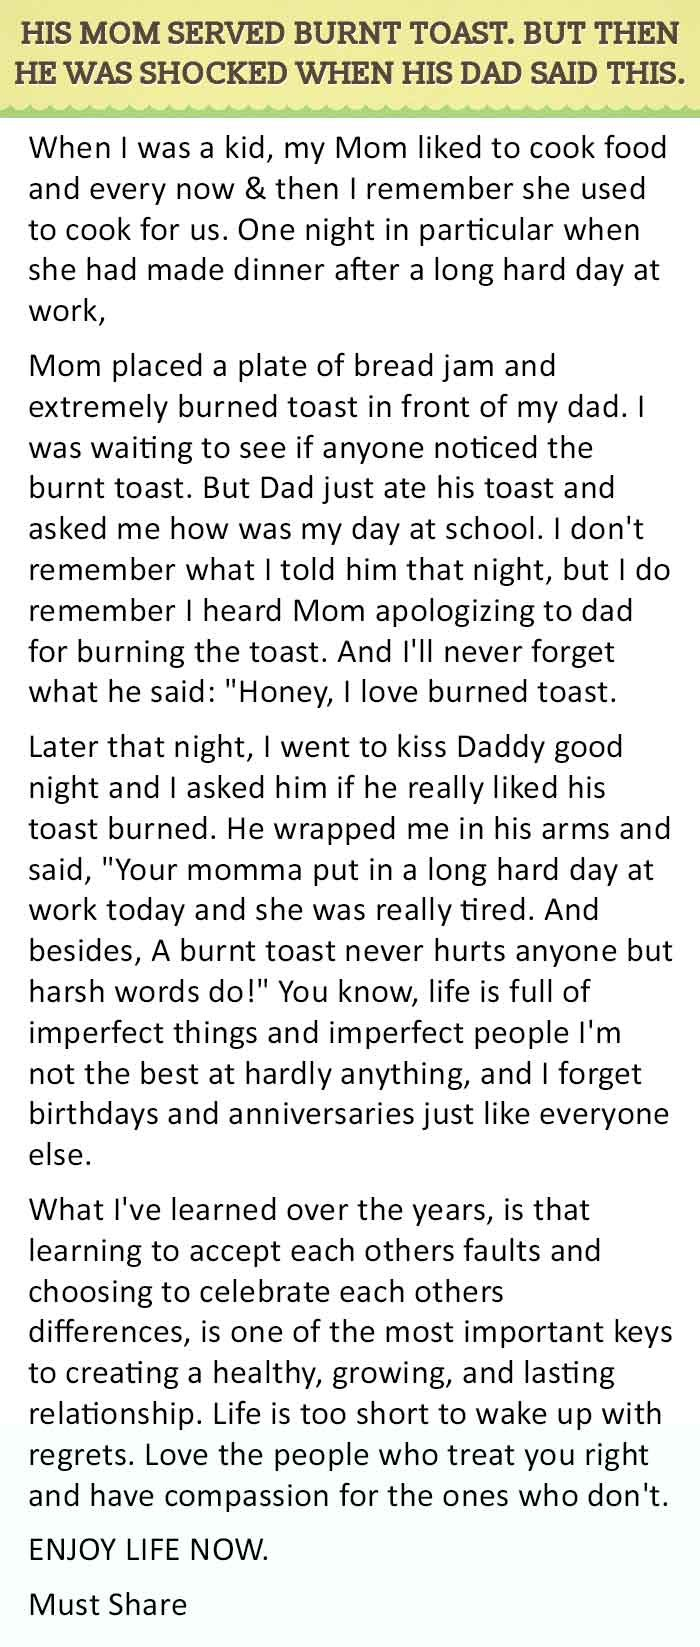 his wife served burned toast for dinner after a hard day of work 10 2d